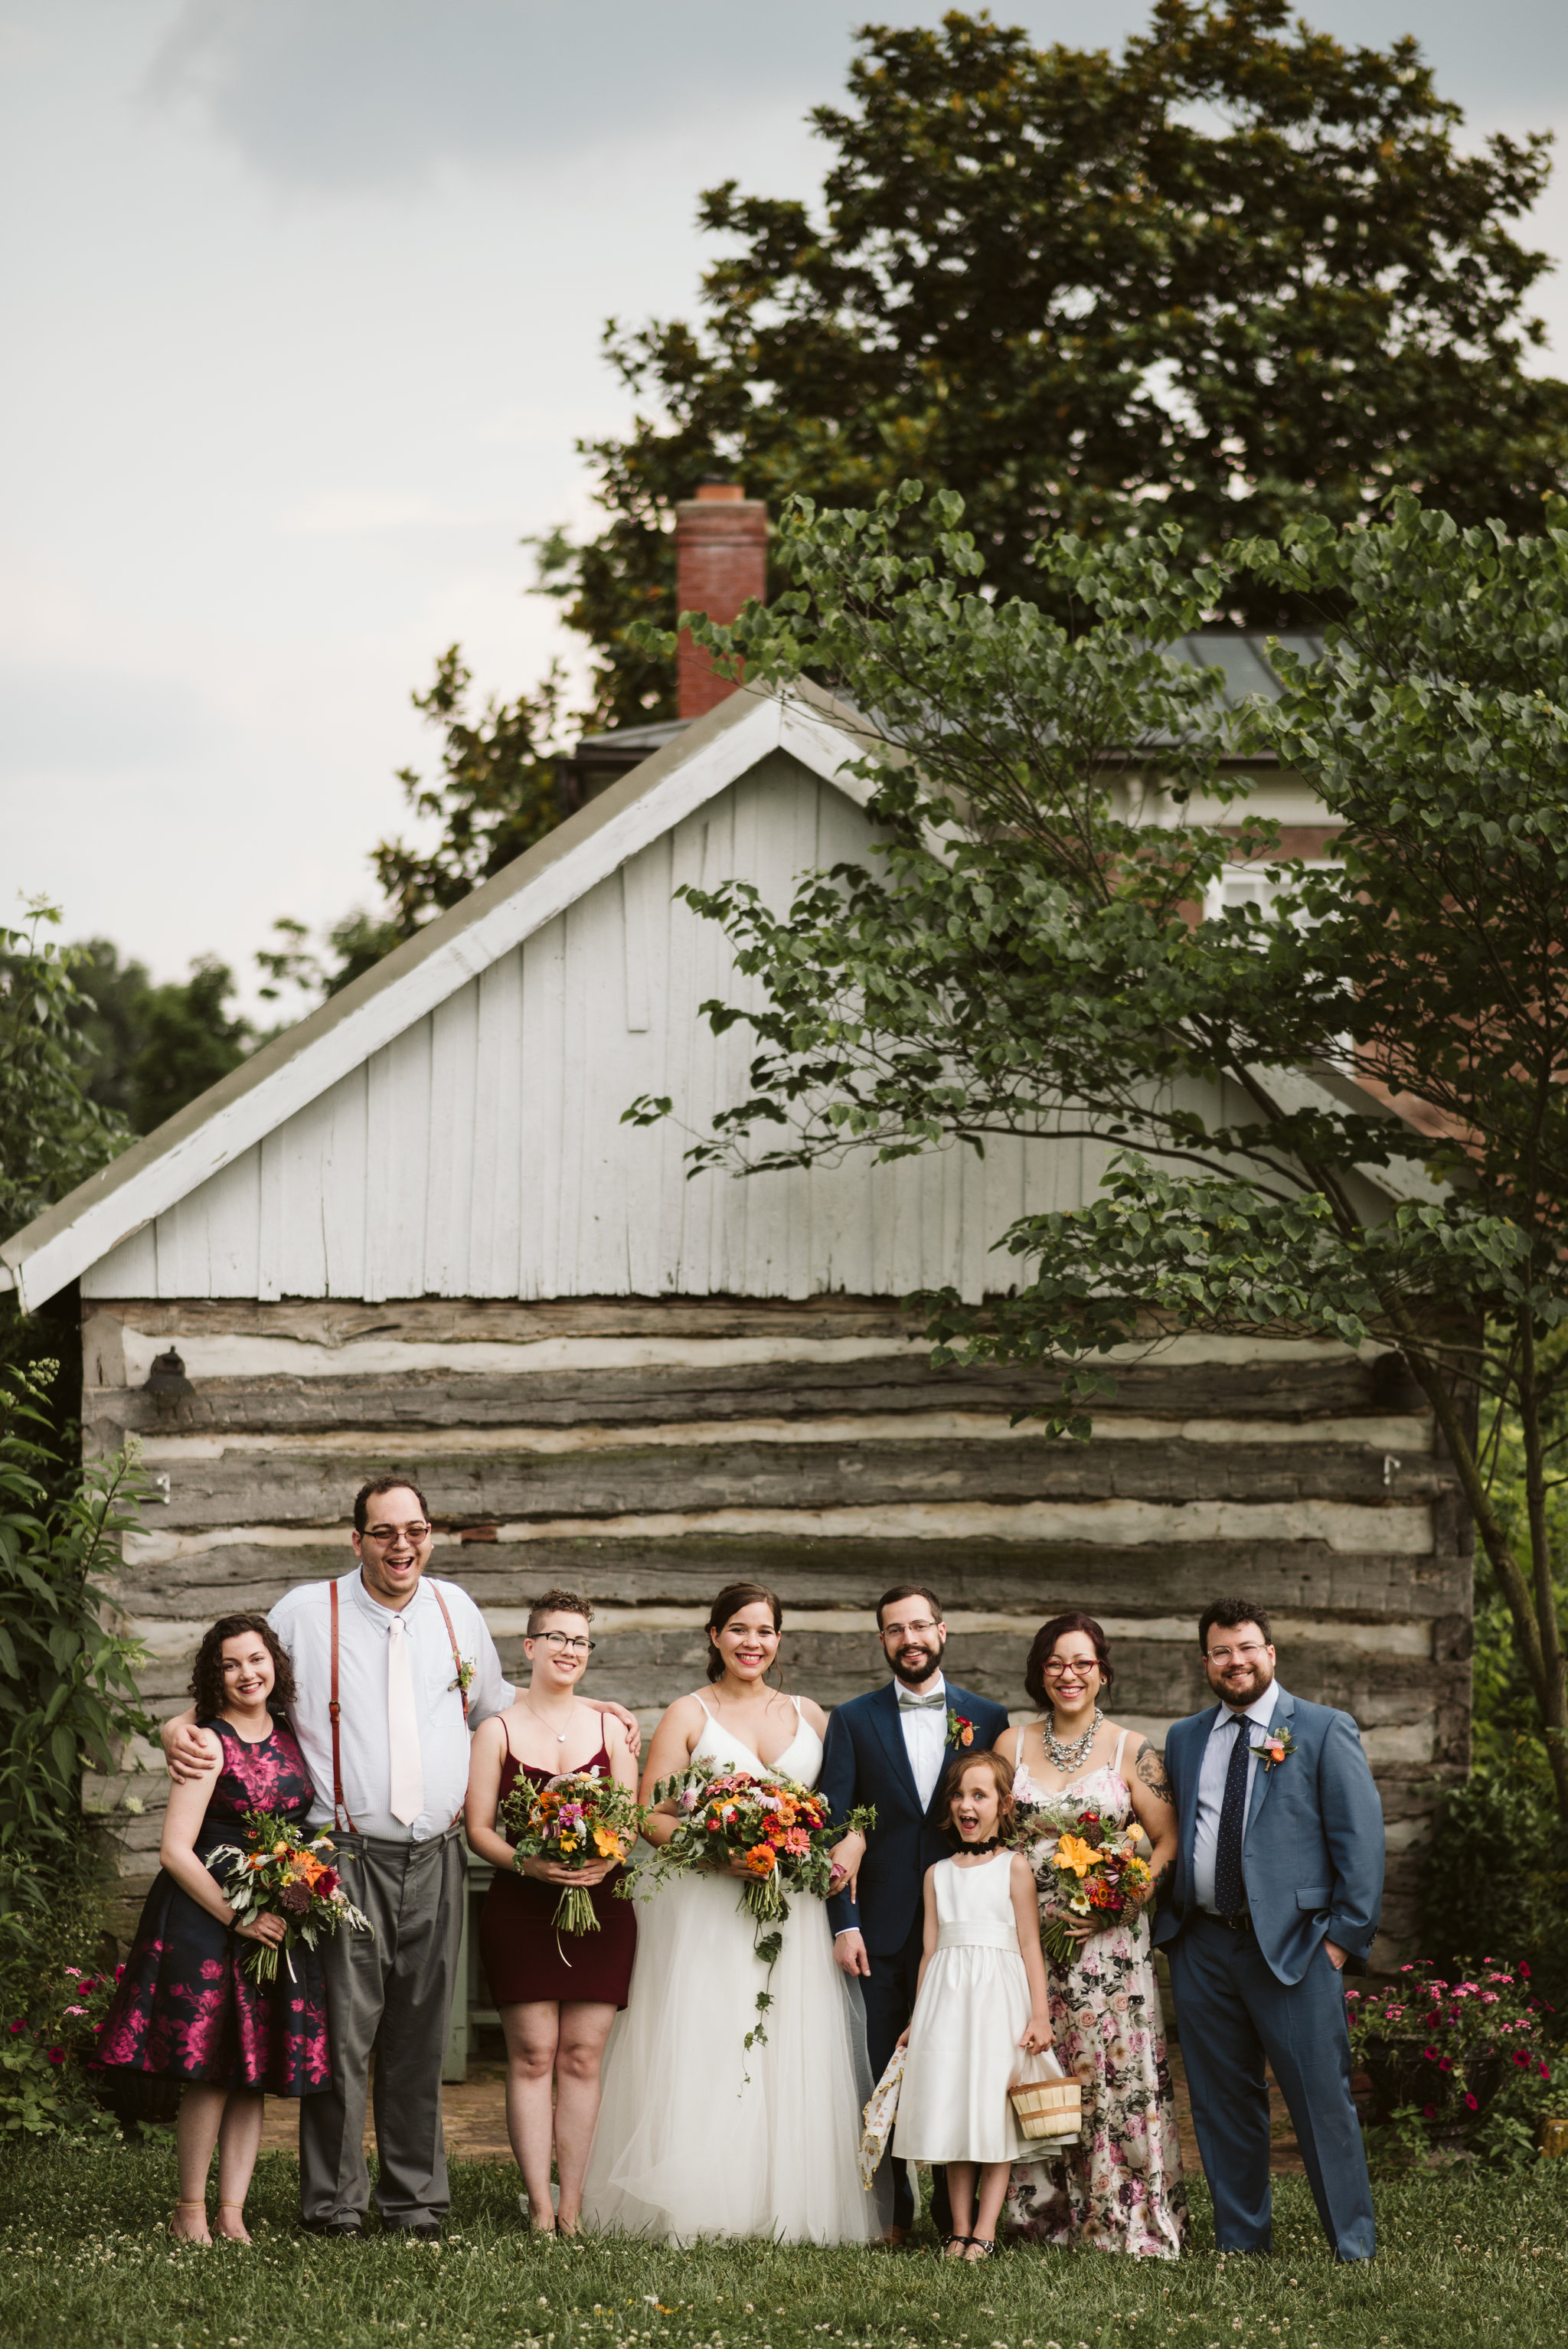 Rocklands Farm, Maryland, Intimate Wedding, Baltimore Wedding Photographer, Sungold Flower Co, Rustic, Romantic, Barn Wedding, Portrait of Wedding Party, Purple Dresses, Blue Suits